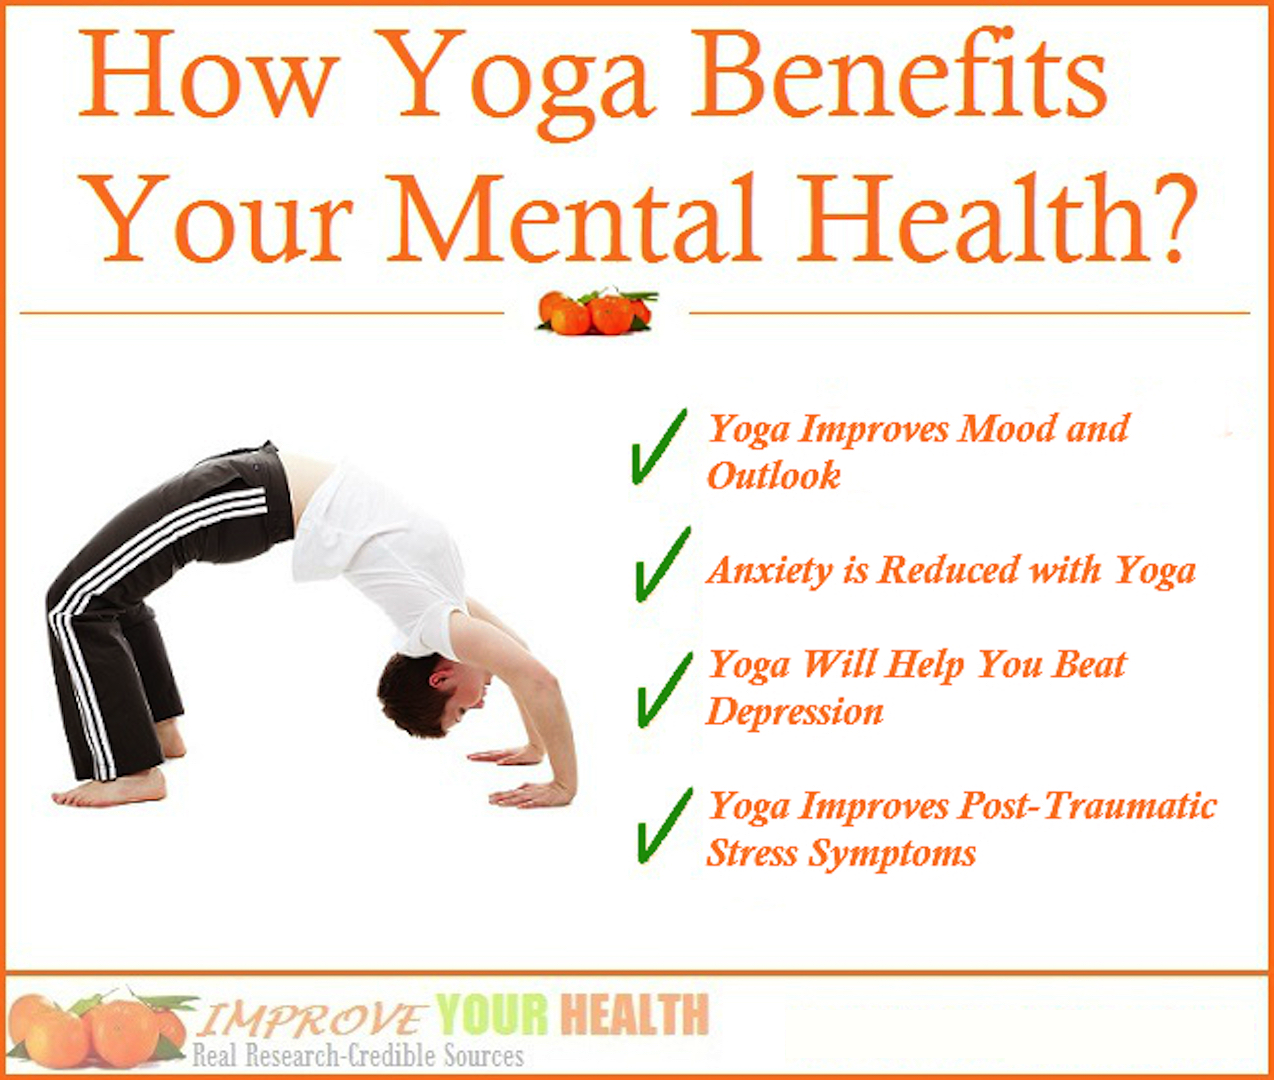 yoga-benefits-for-mental-health